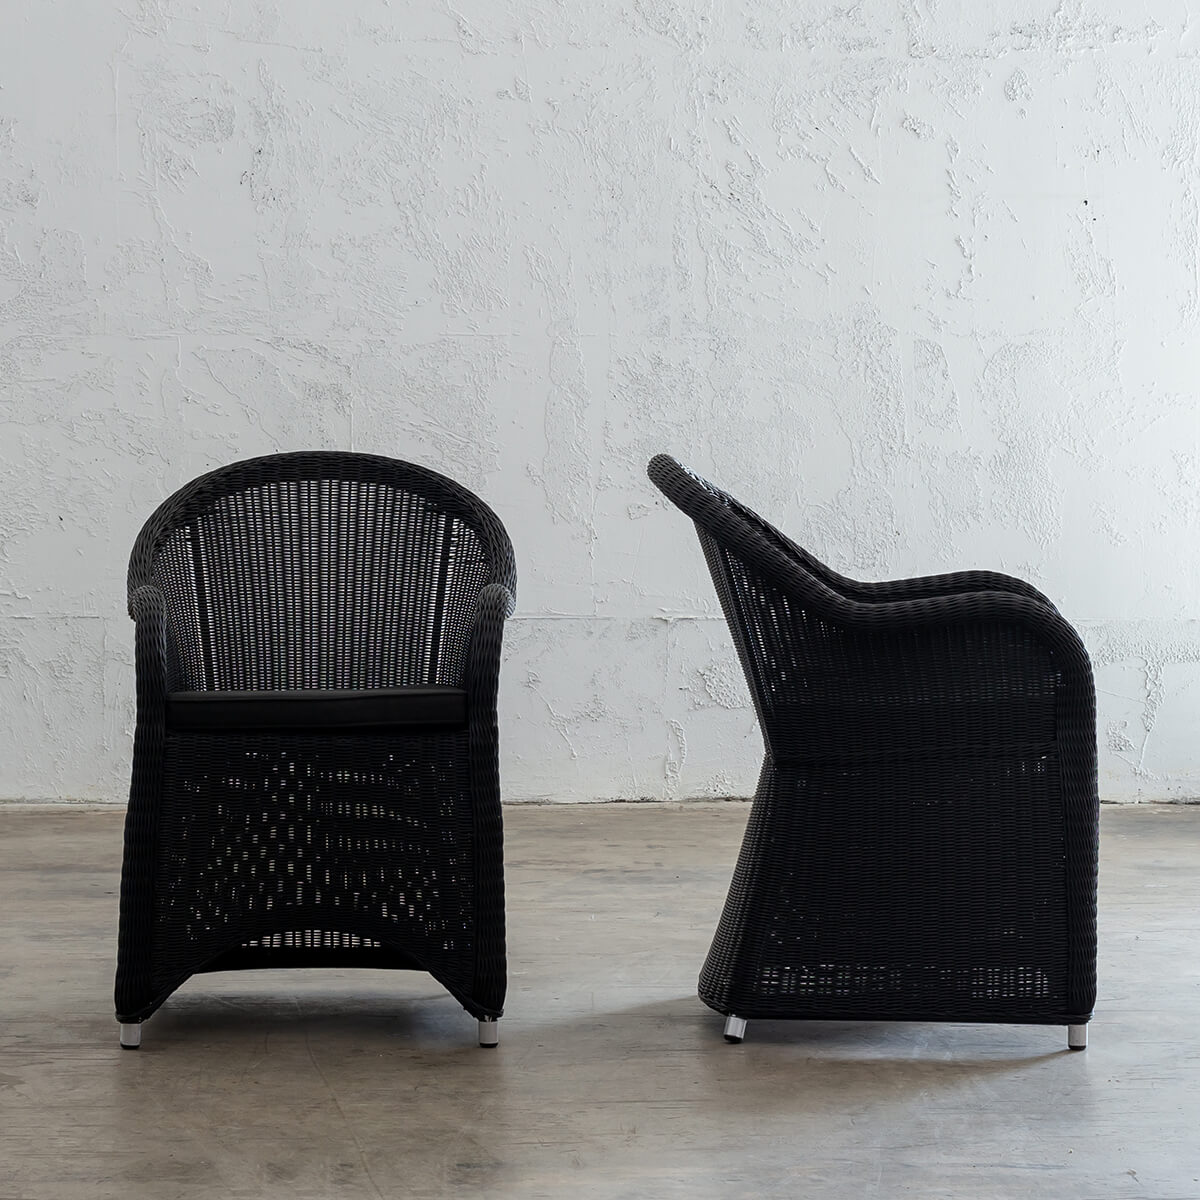 LECCO HAMPTON INSPIRED RATTAN WOVEN VERONA CHAIR  |  CARBON BLACK WICKER